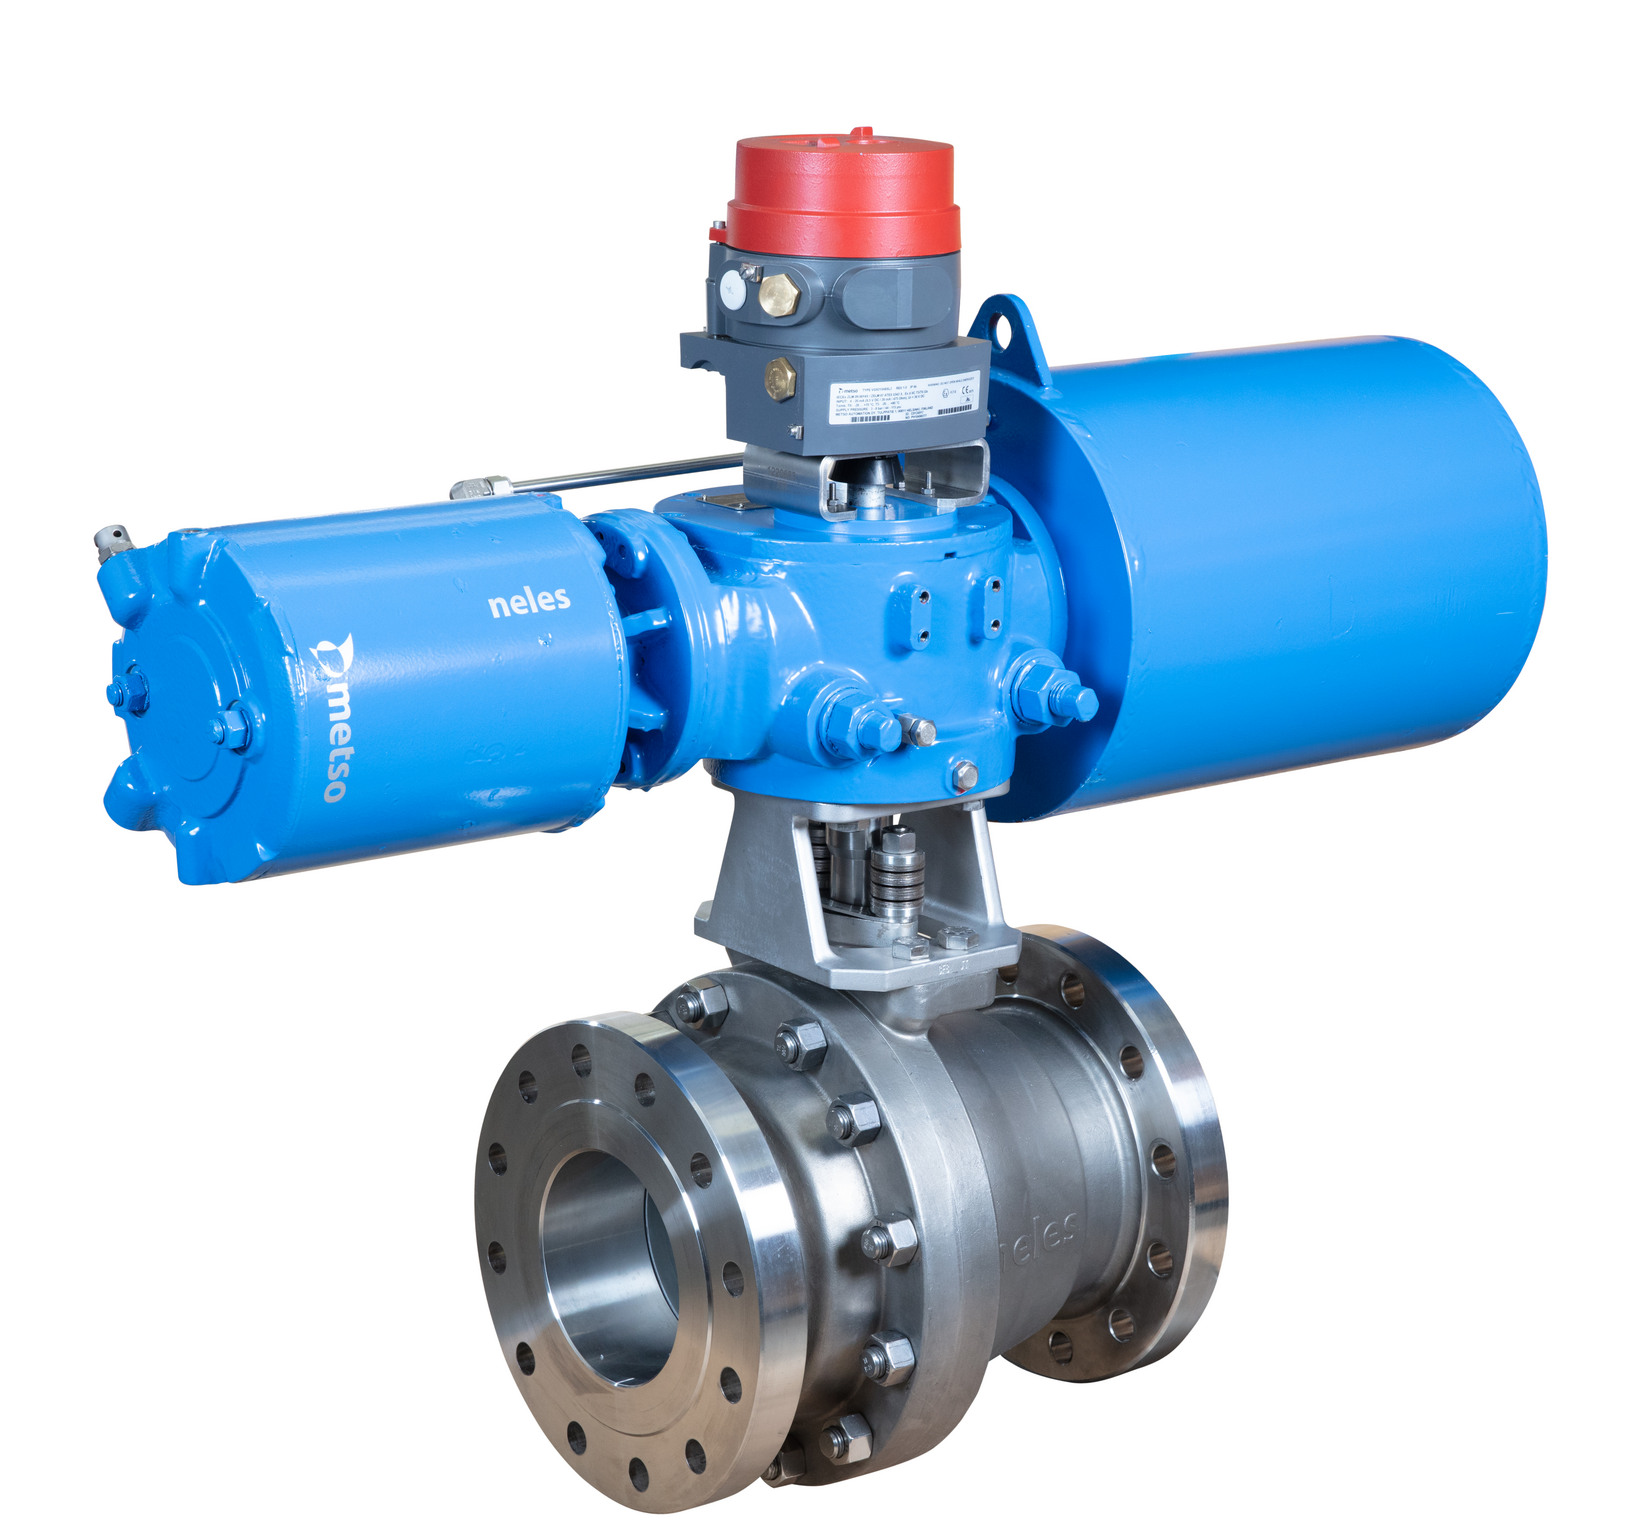 Neles X-series ball valve with N1 series high performance heavy duty Neles Scotch-Yoke actuator and Neles ValvGuard VG9000 safety solenoid.Neles X-series ball valve with N1 series high performance heavy duty Neles Scotch-Yoke actuator and Neles ValvGuard VG9000 safety solenoid.